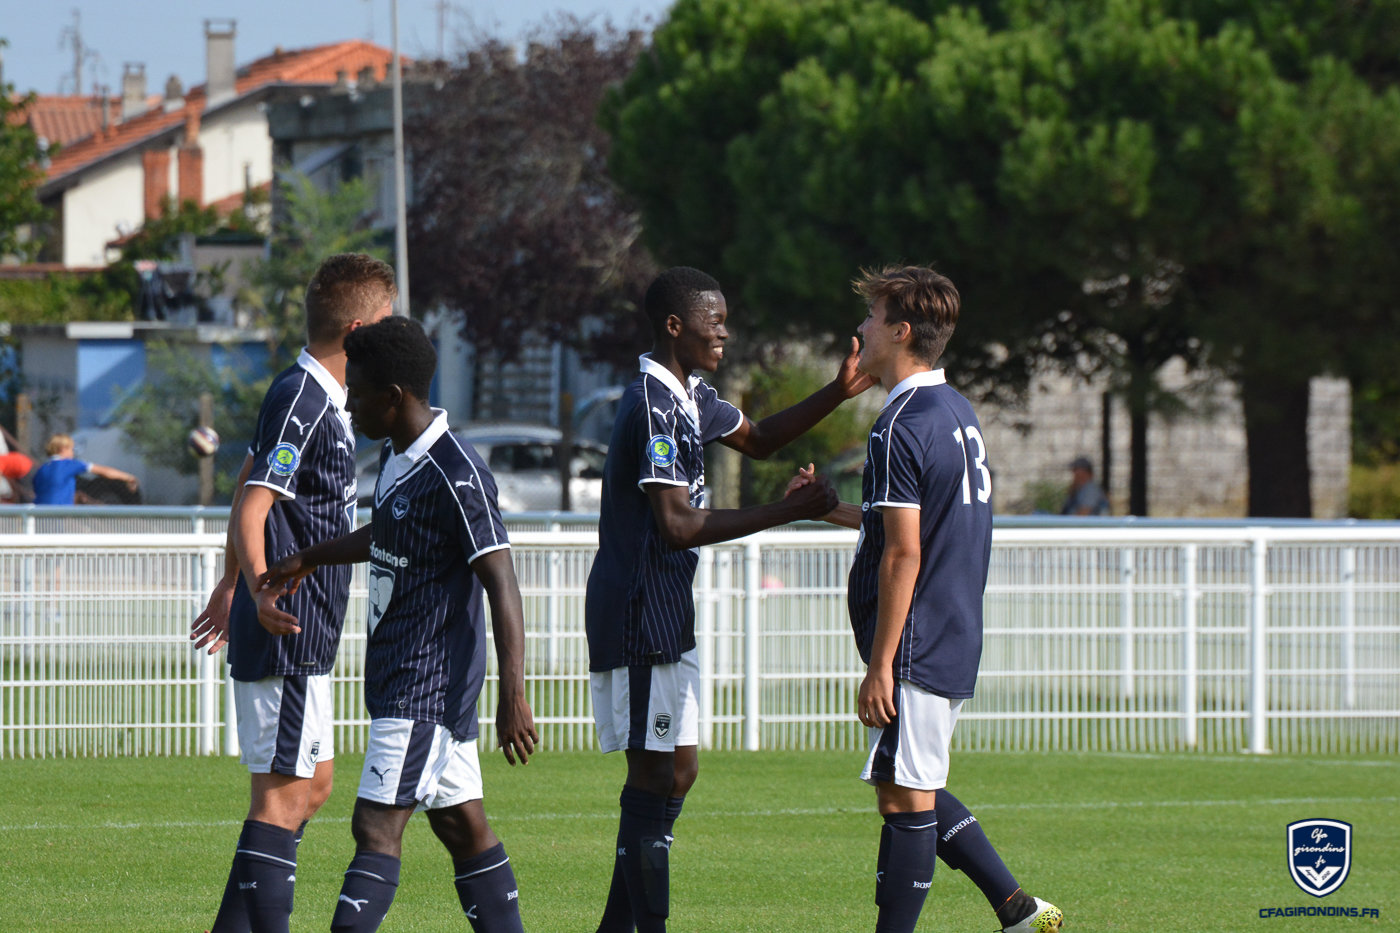 Cfa Girondins : Victoire contre Libourne (2-1) - Formation Girondins